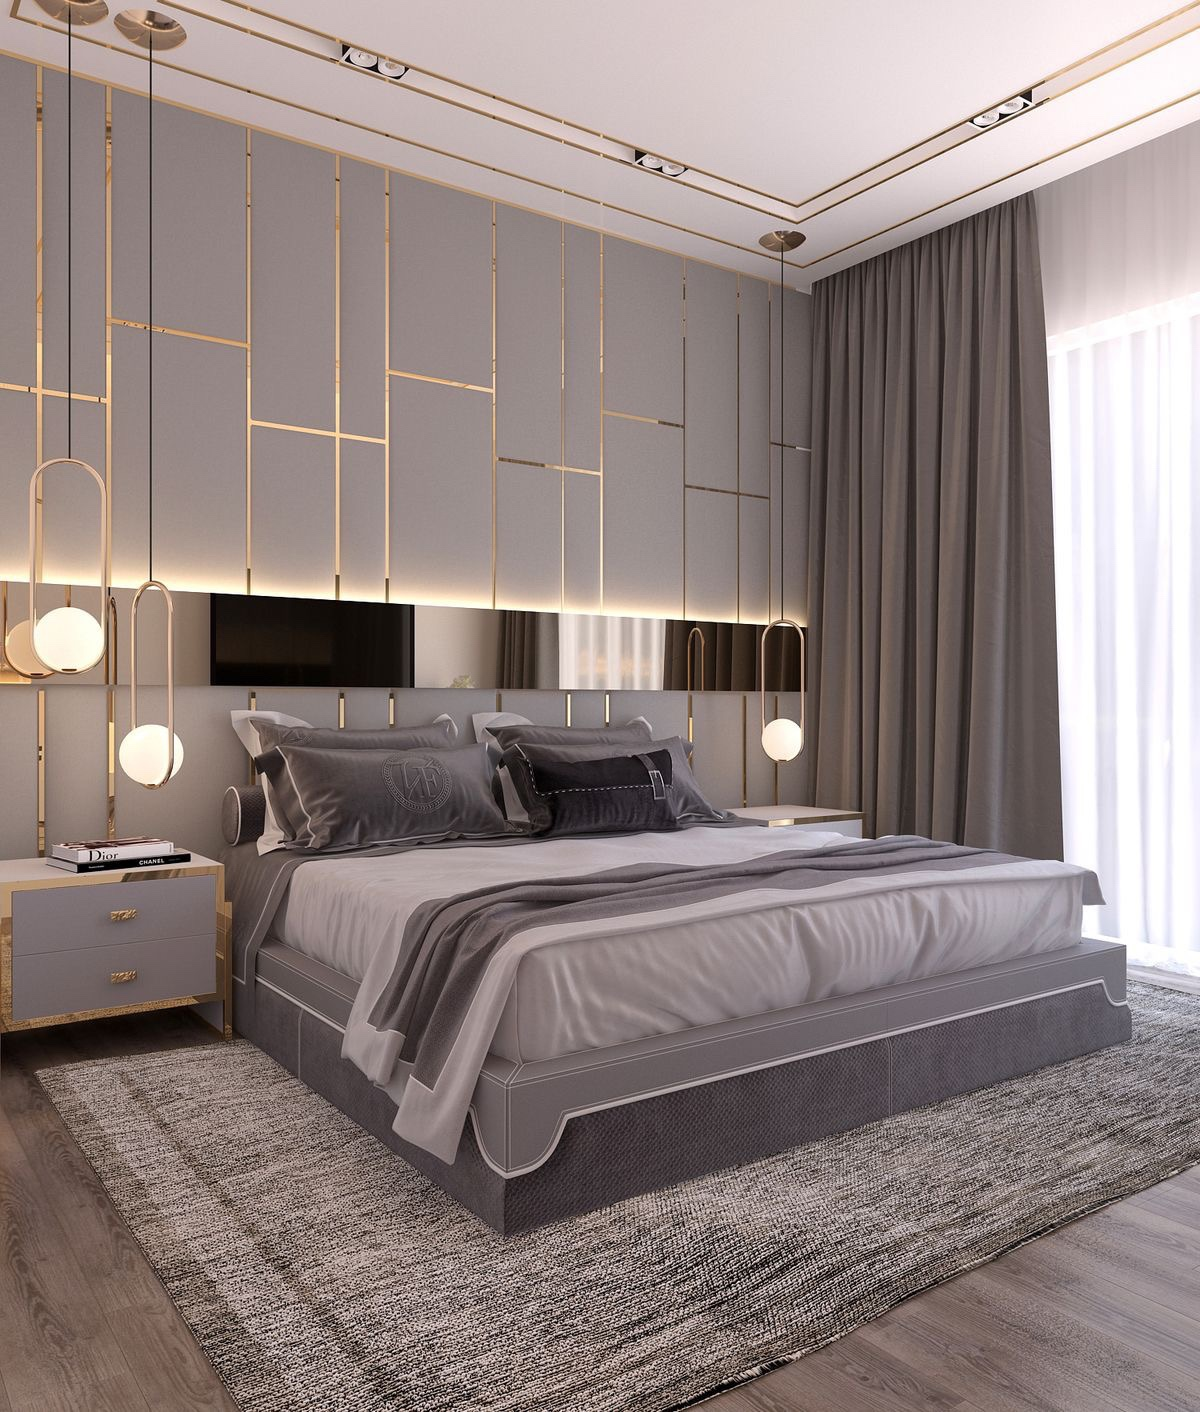 This bedroom is made far more interesting with the addition of the brass detailing, mirrored panel and textured rug.   Courtesy of Pinterest